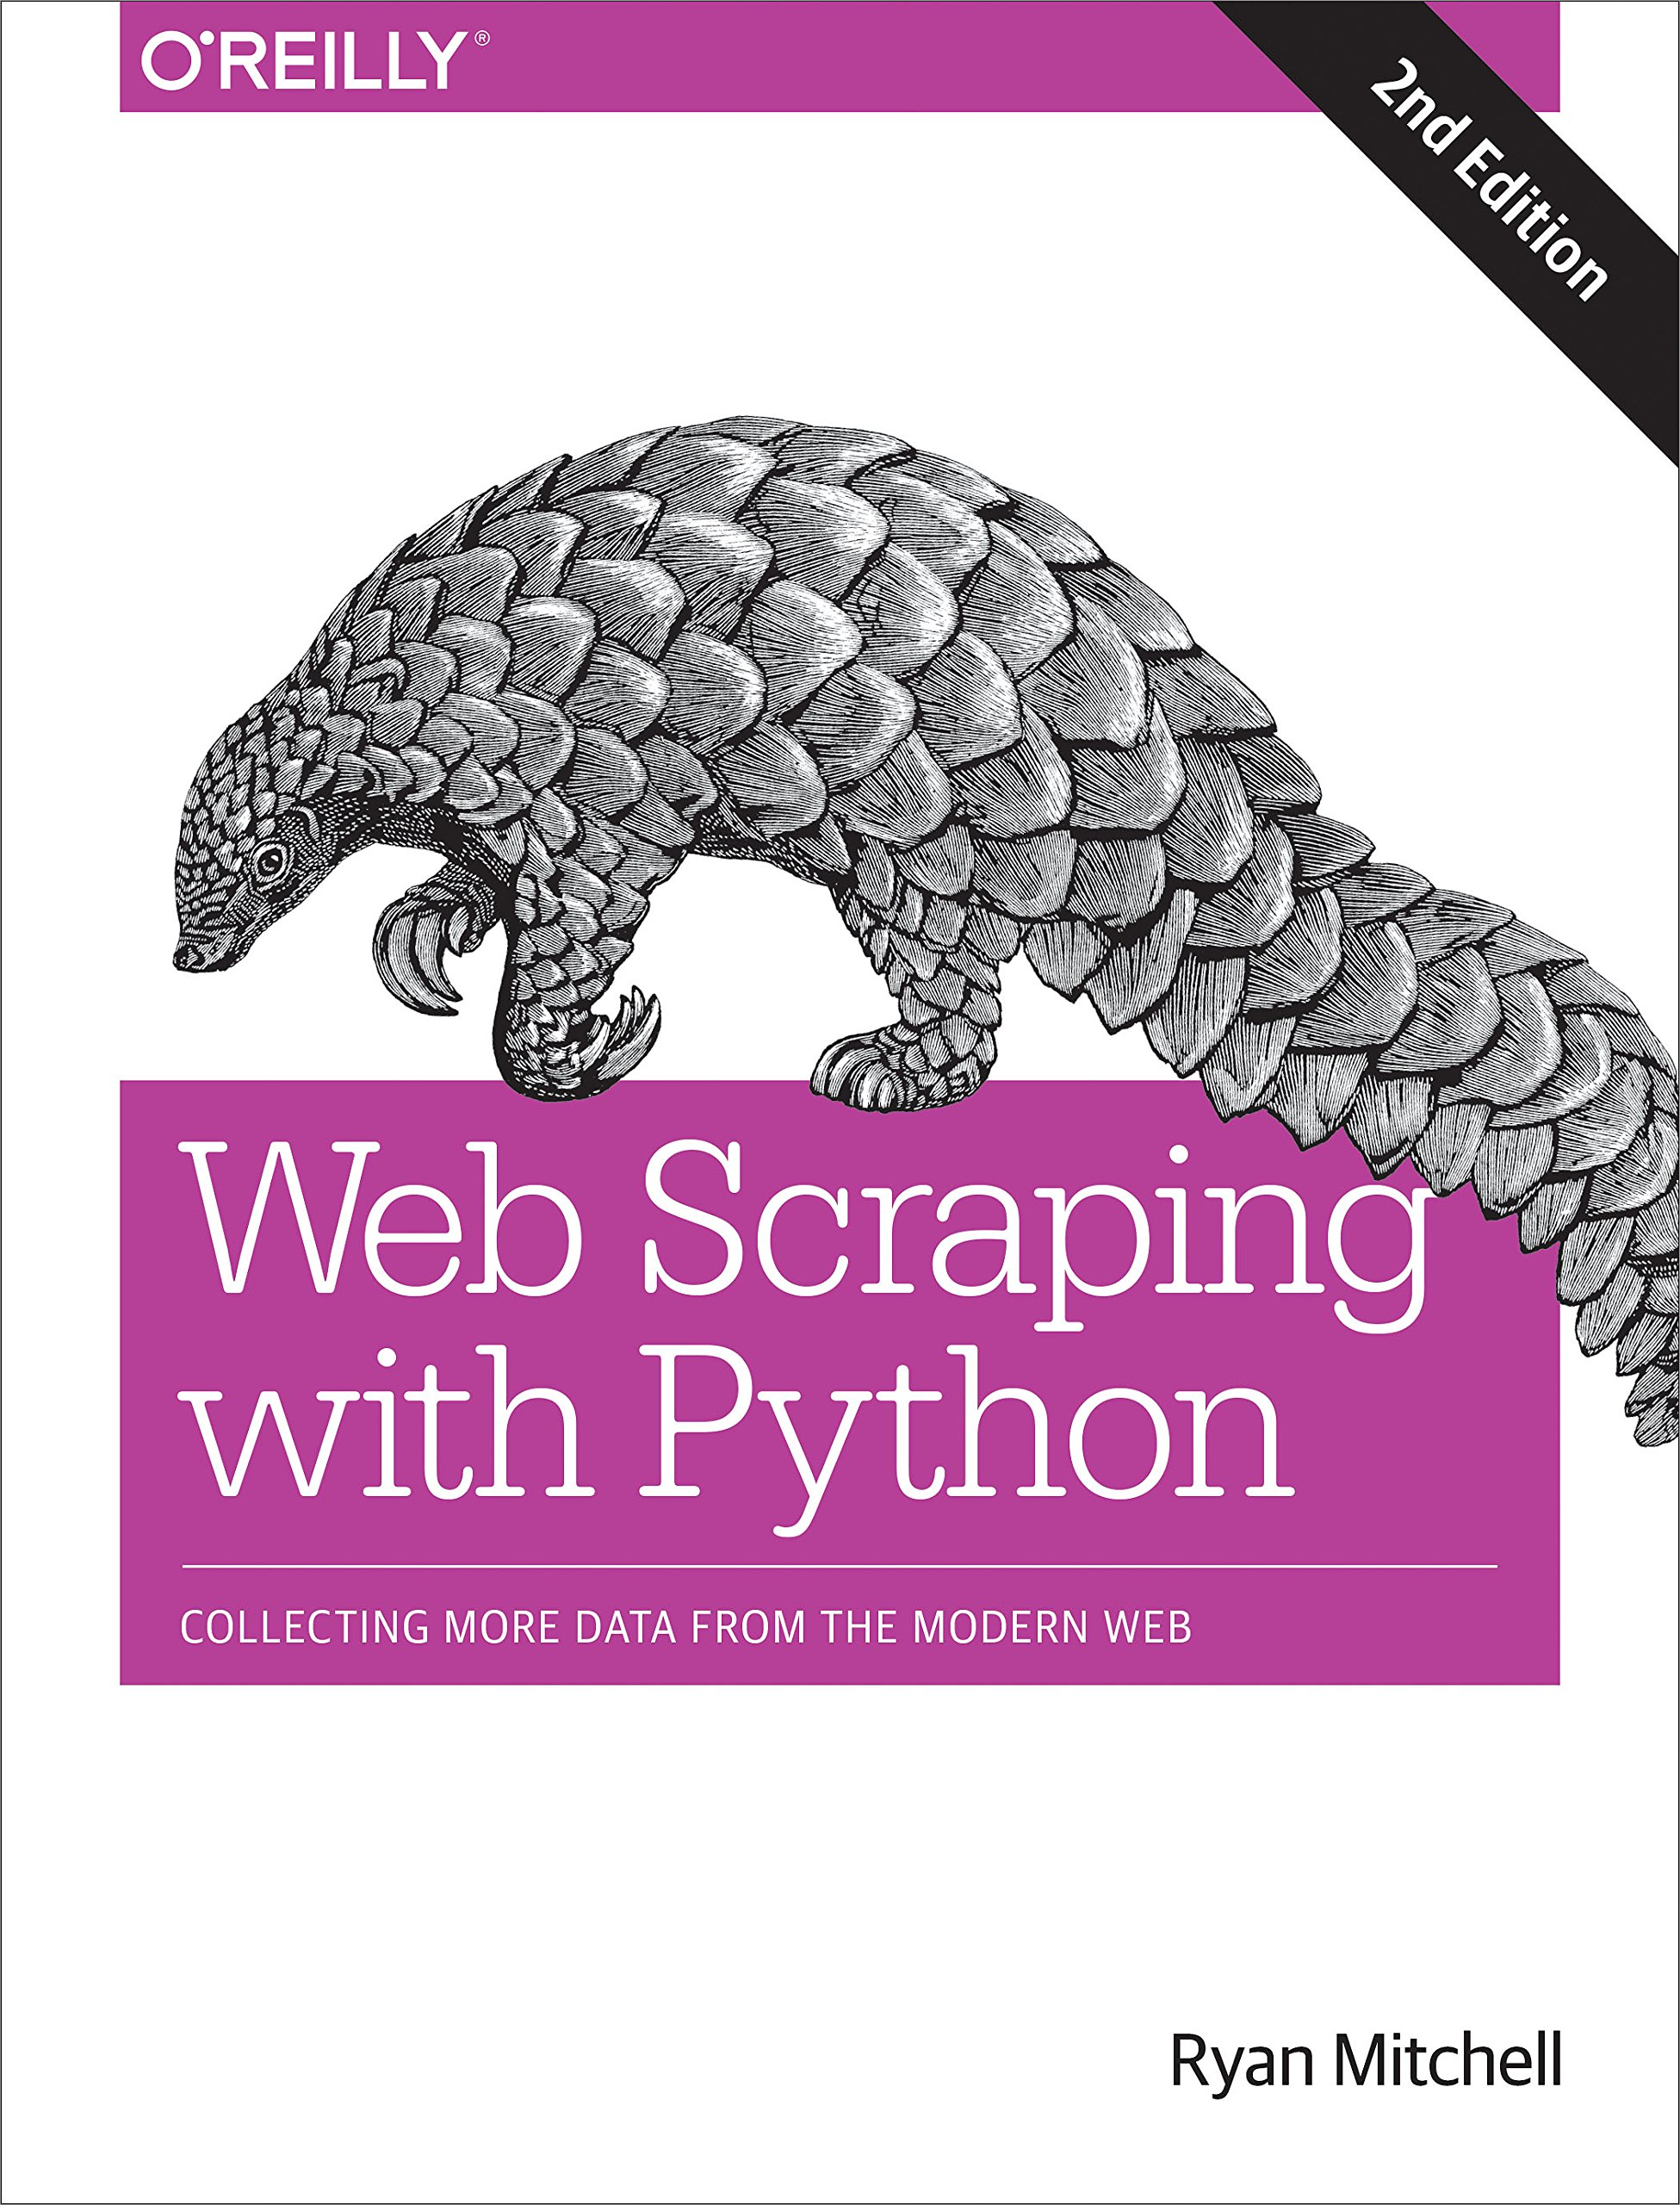 Web Scraping with Python: Collecting More Data from the Modern Web by O'Reilly Media